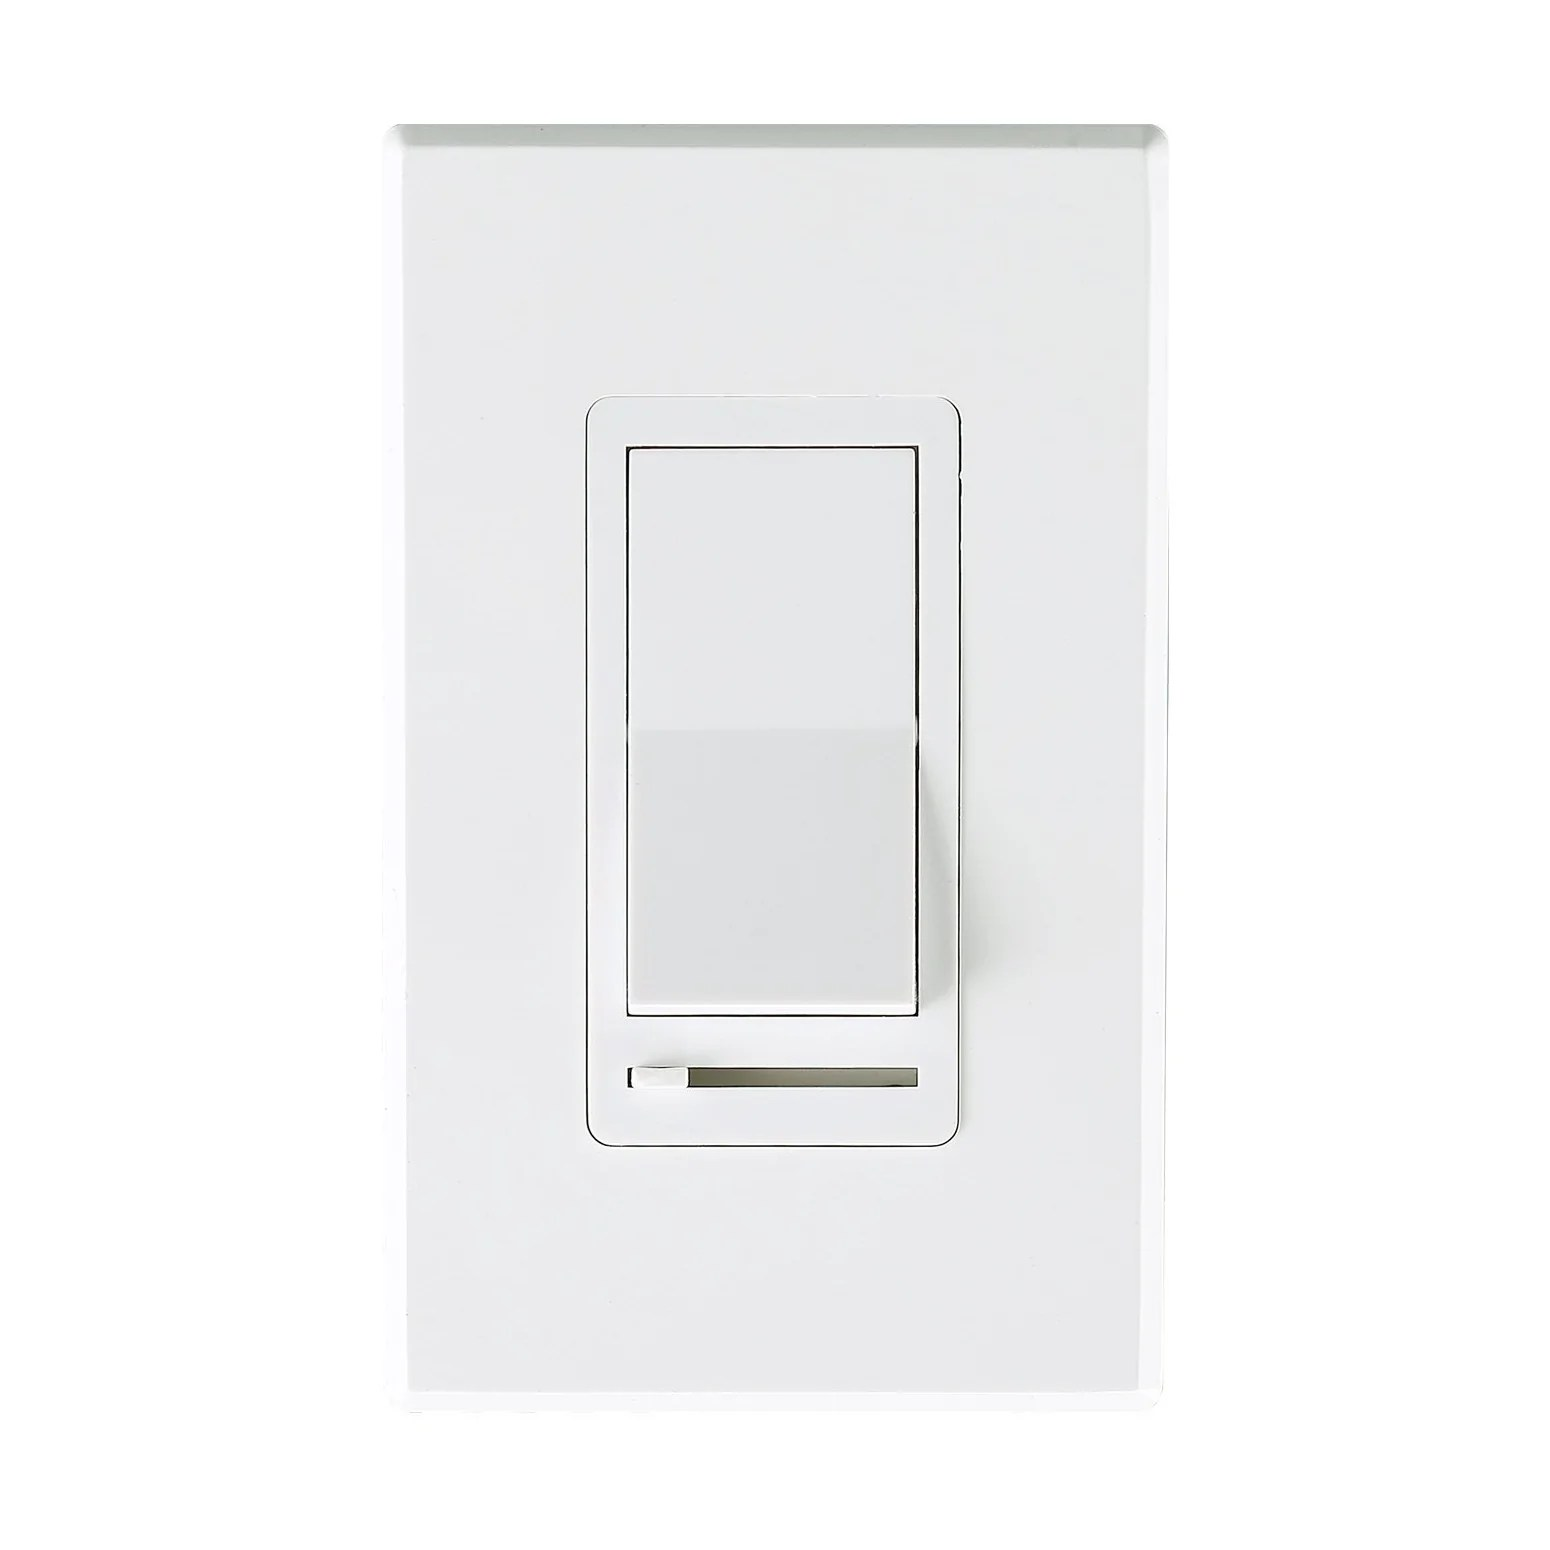 Dimmer Switch In Wall Dimmer Switch For Led Light Cfl Incandescent 3 Way Single Pole Cover Plate Included White